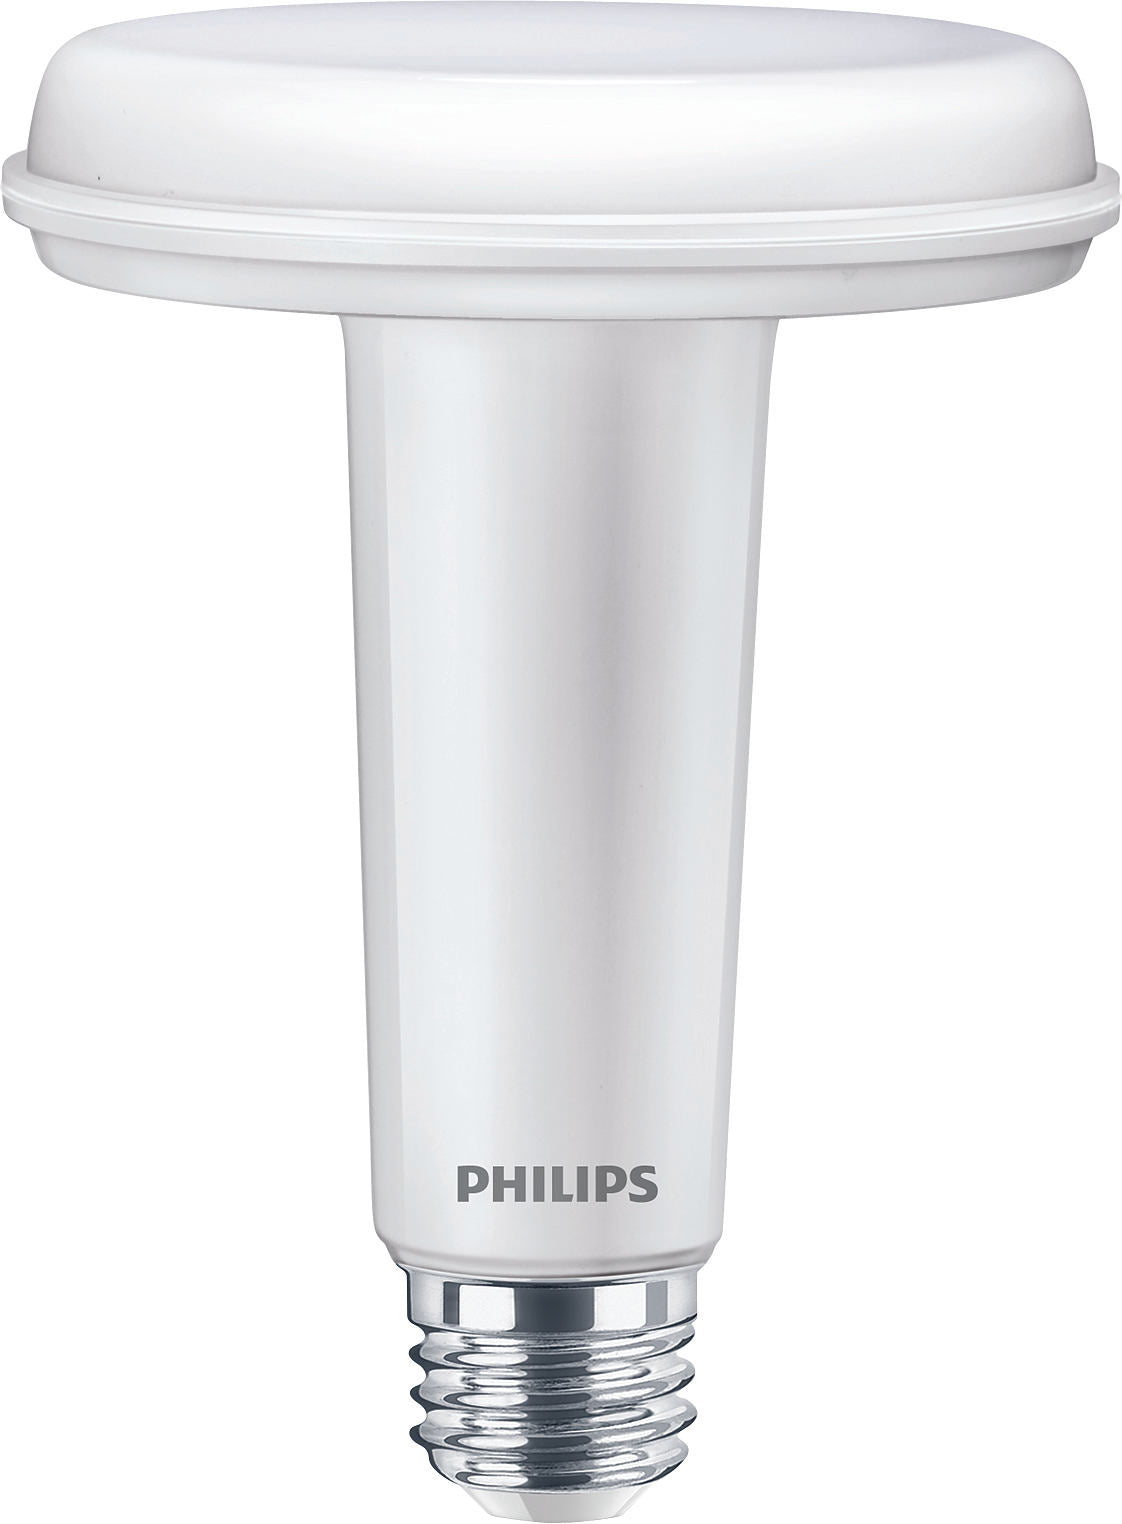 Philips SlimStyle 9.5W BR30 LED 2700K Dimmable Bulb - 65w equivalent